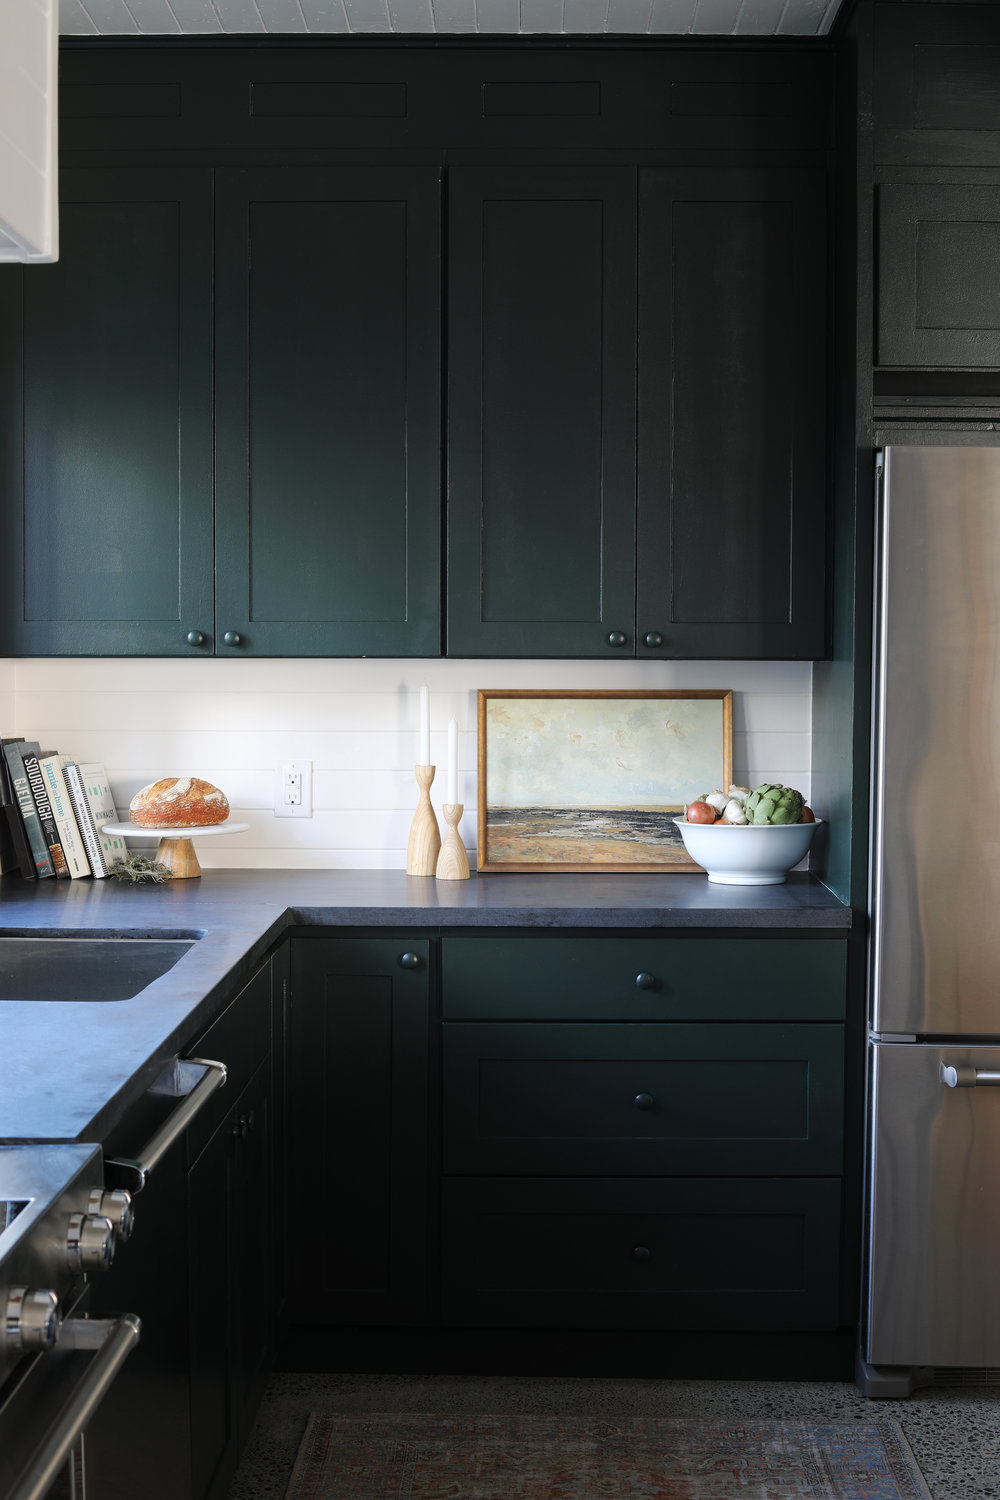 The Grit and Polish - Tacoma Kitchen Sherwin Williams Jasper Cabinets + Art.jpg